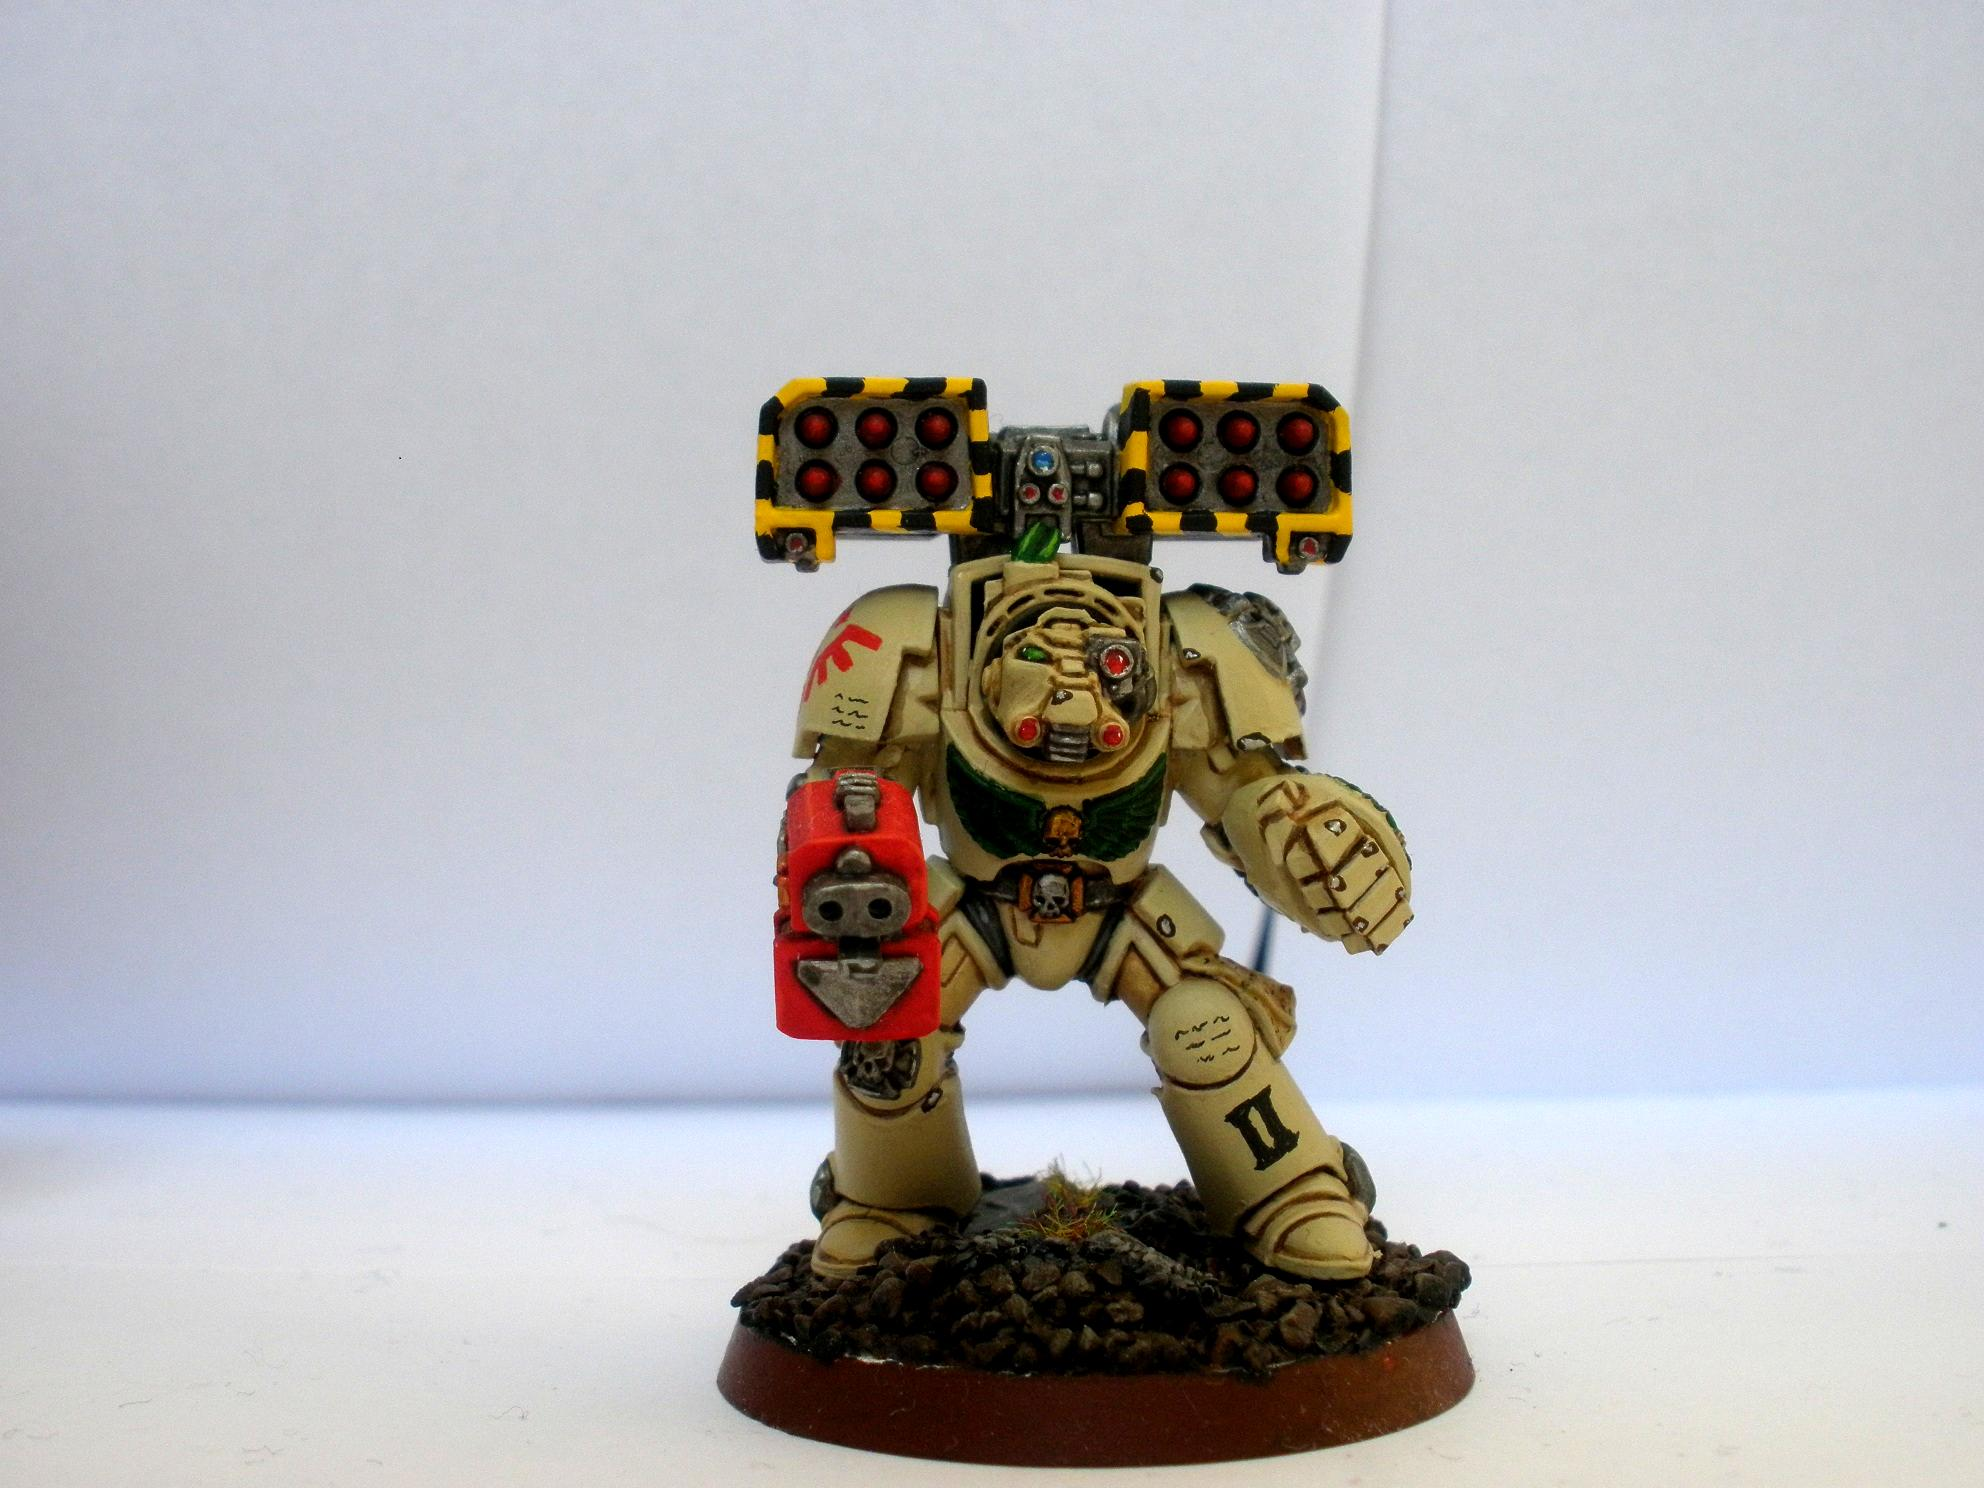 Cyclone Missile Launcher, Deathwing Terminator